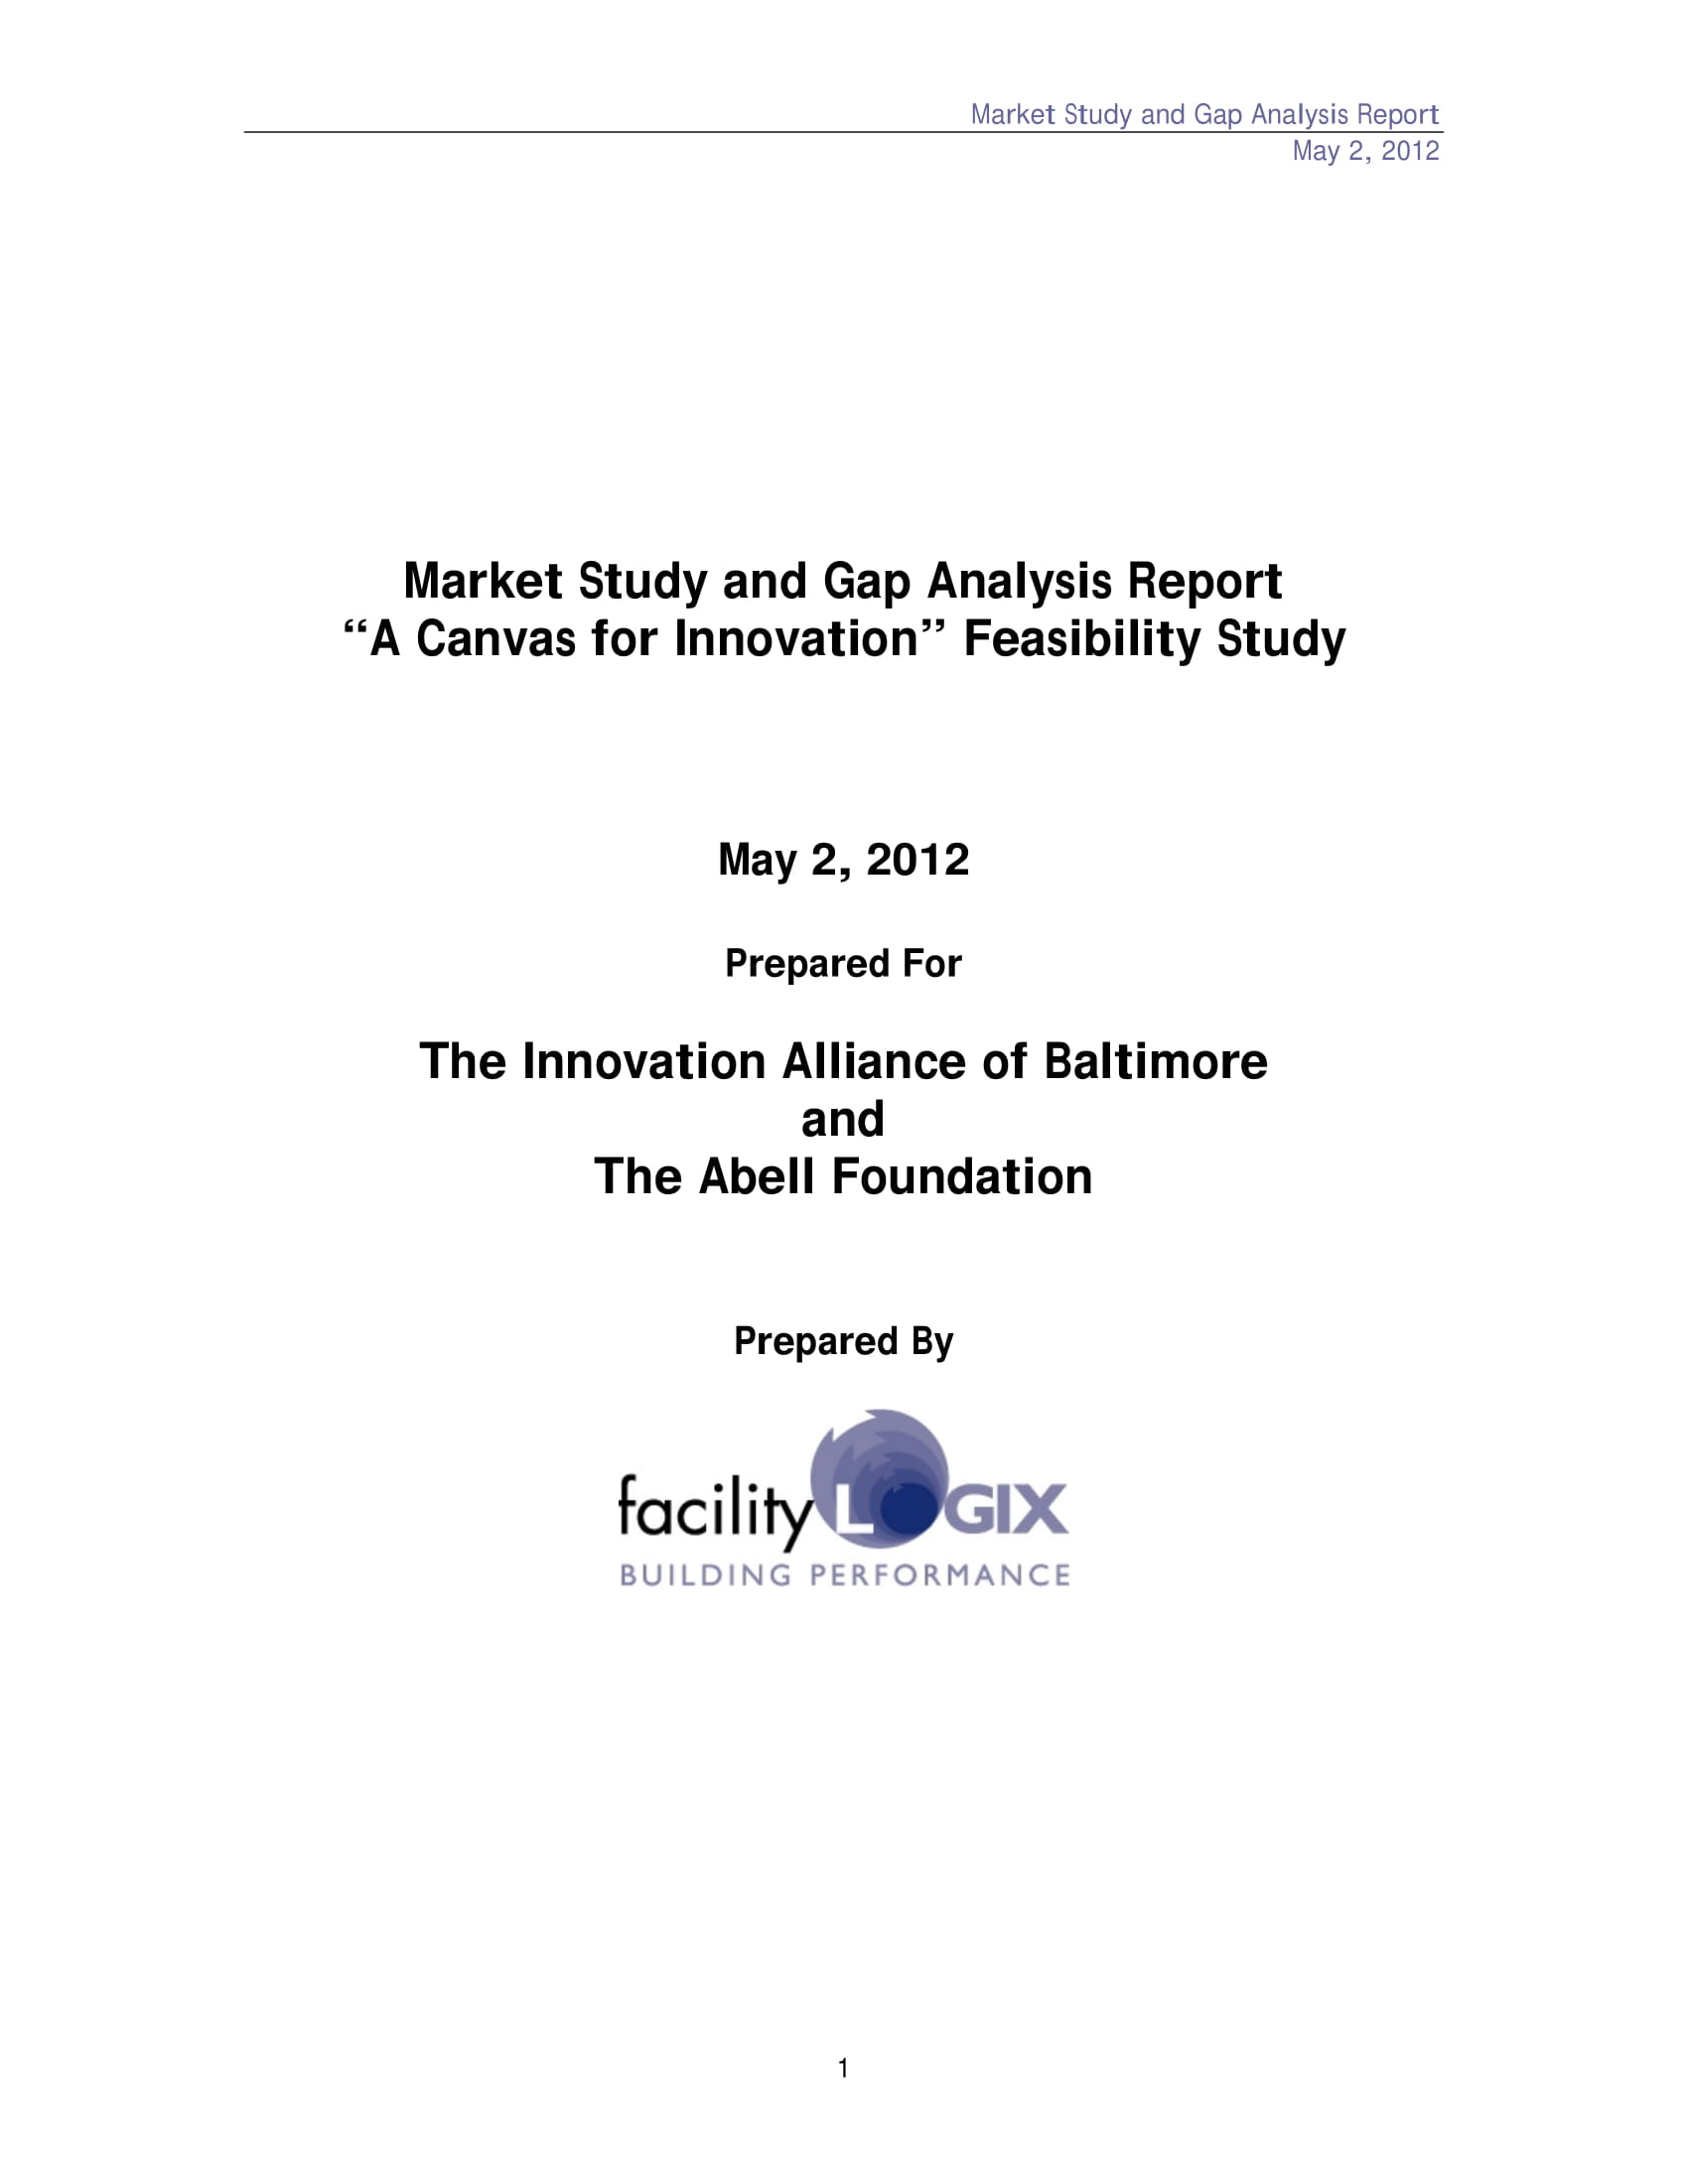 market study and gap analysis report example 01